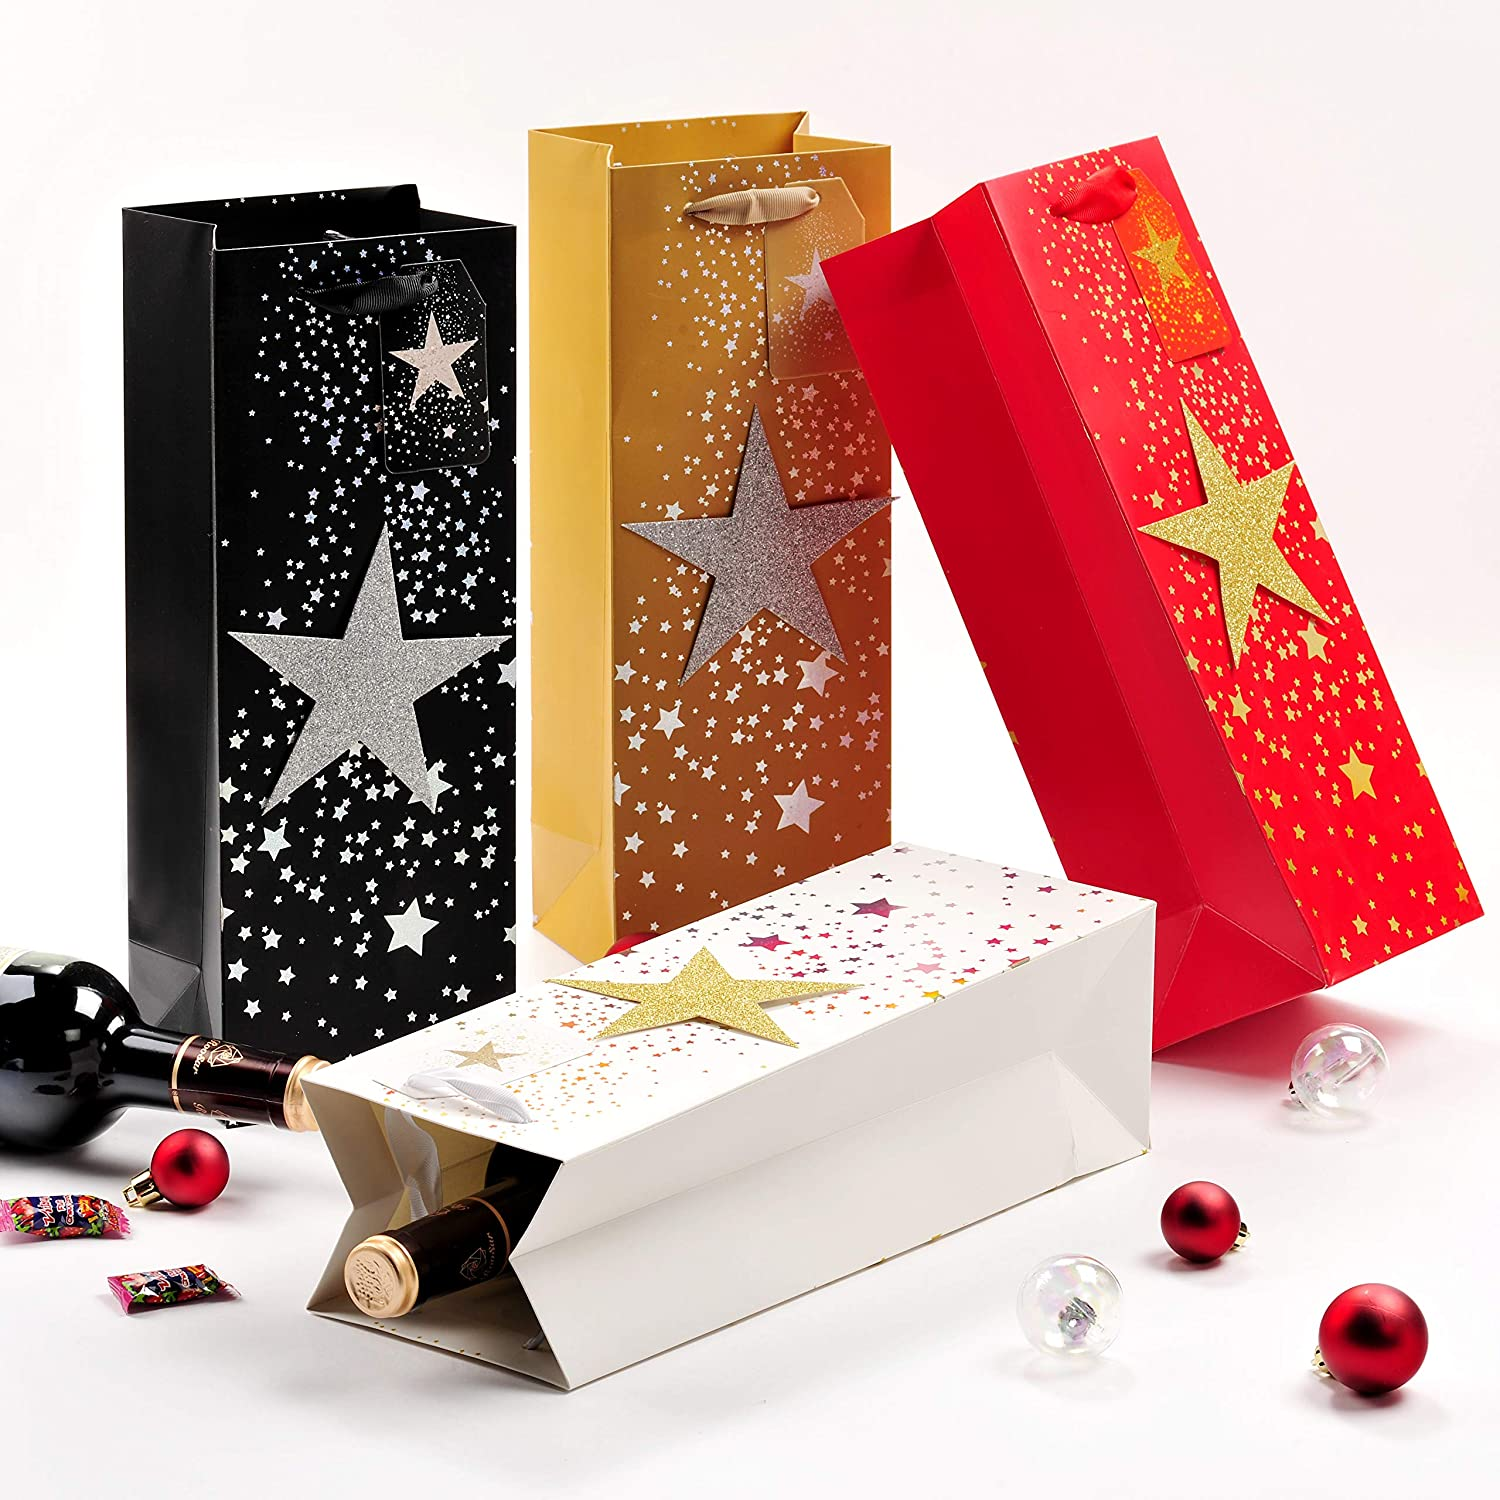 4 Pack Wine Gift Bags for Christmas, Bling Bottle Gift Bags with Stars for Thanks-Giving Day, Wine Wrapping Bags with Handles, Paper Gift Bags for Holiday, Wine Bottle Bags for Home Party (Stars)